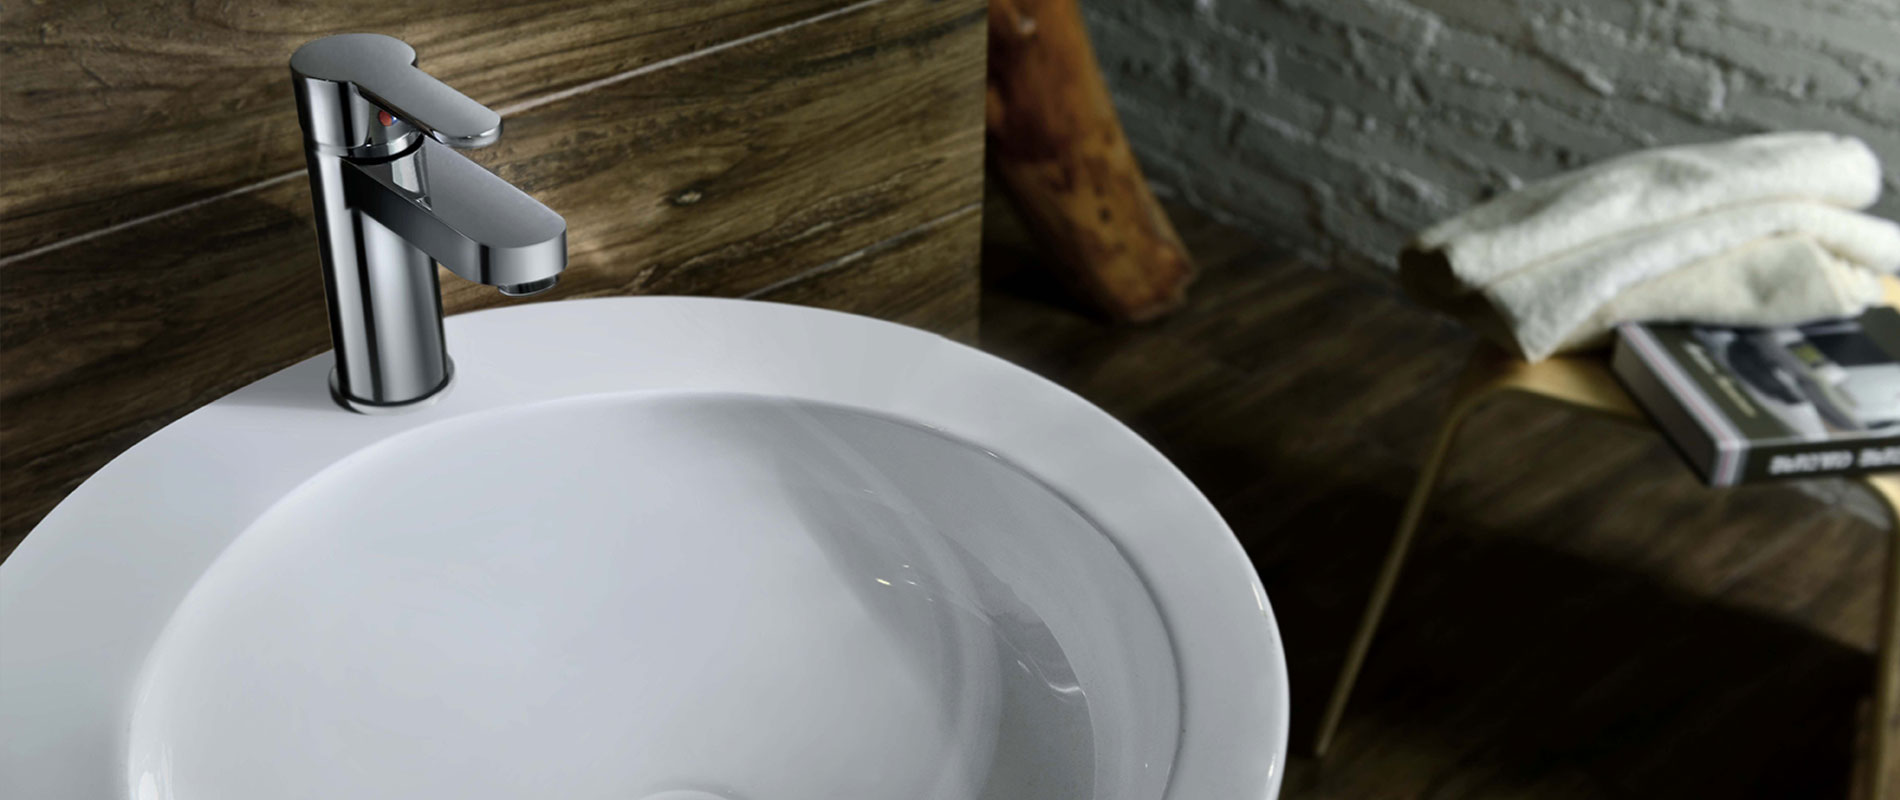 Italian design for bathroom taps and accessories